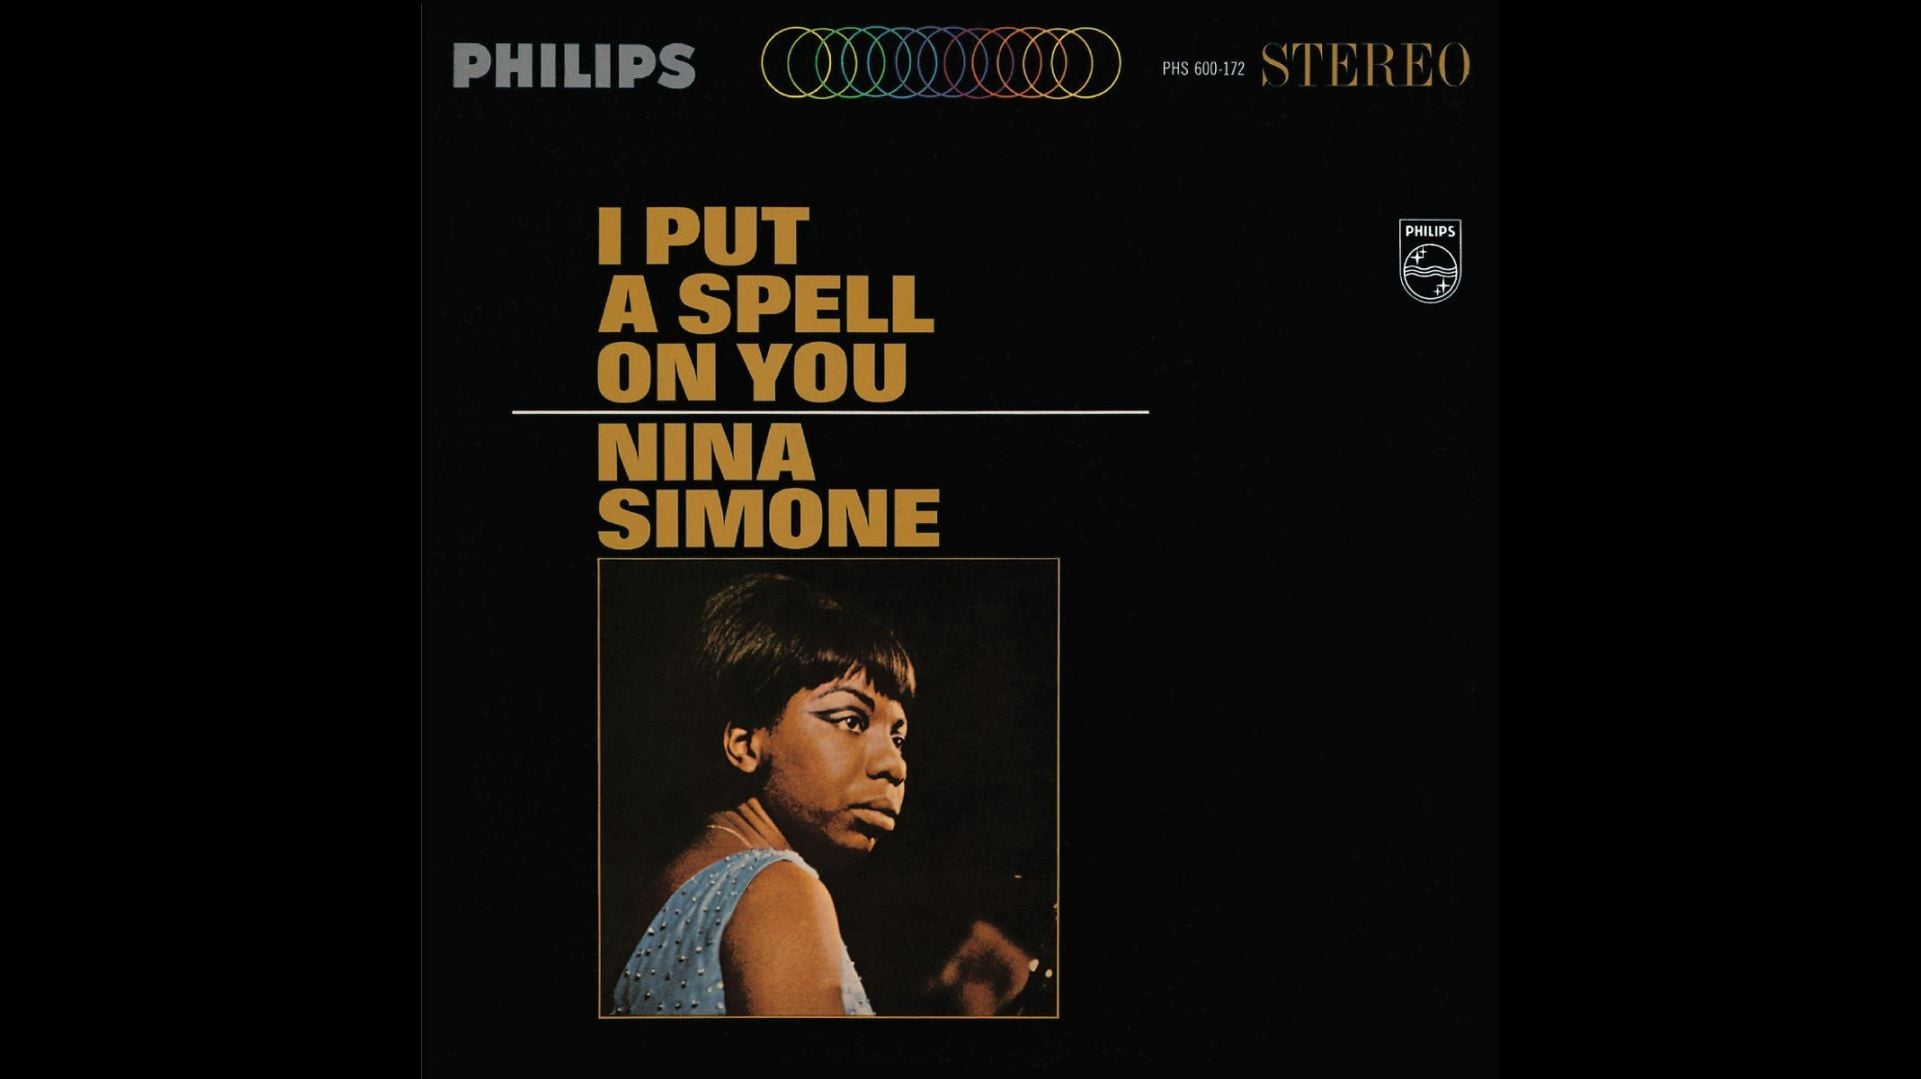 11 Nina Simone - I Put A Spell On You